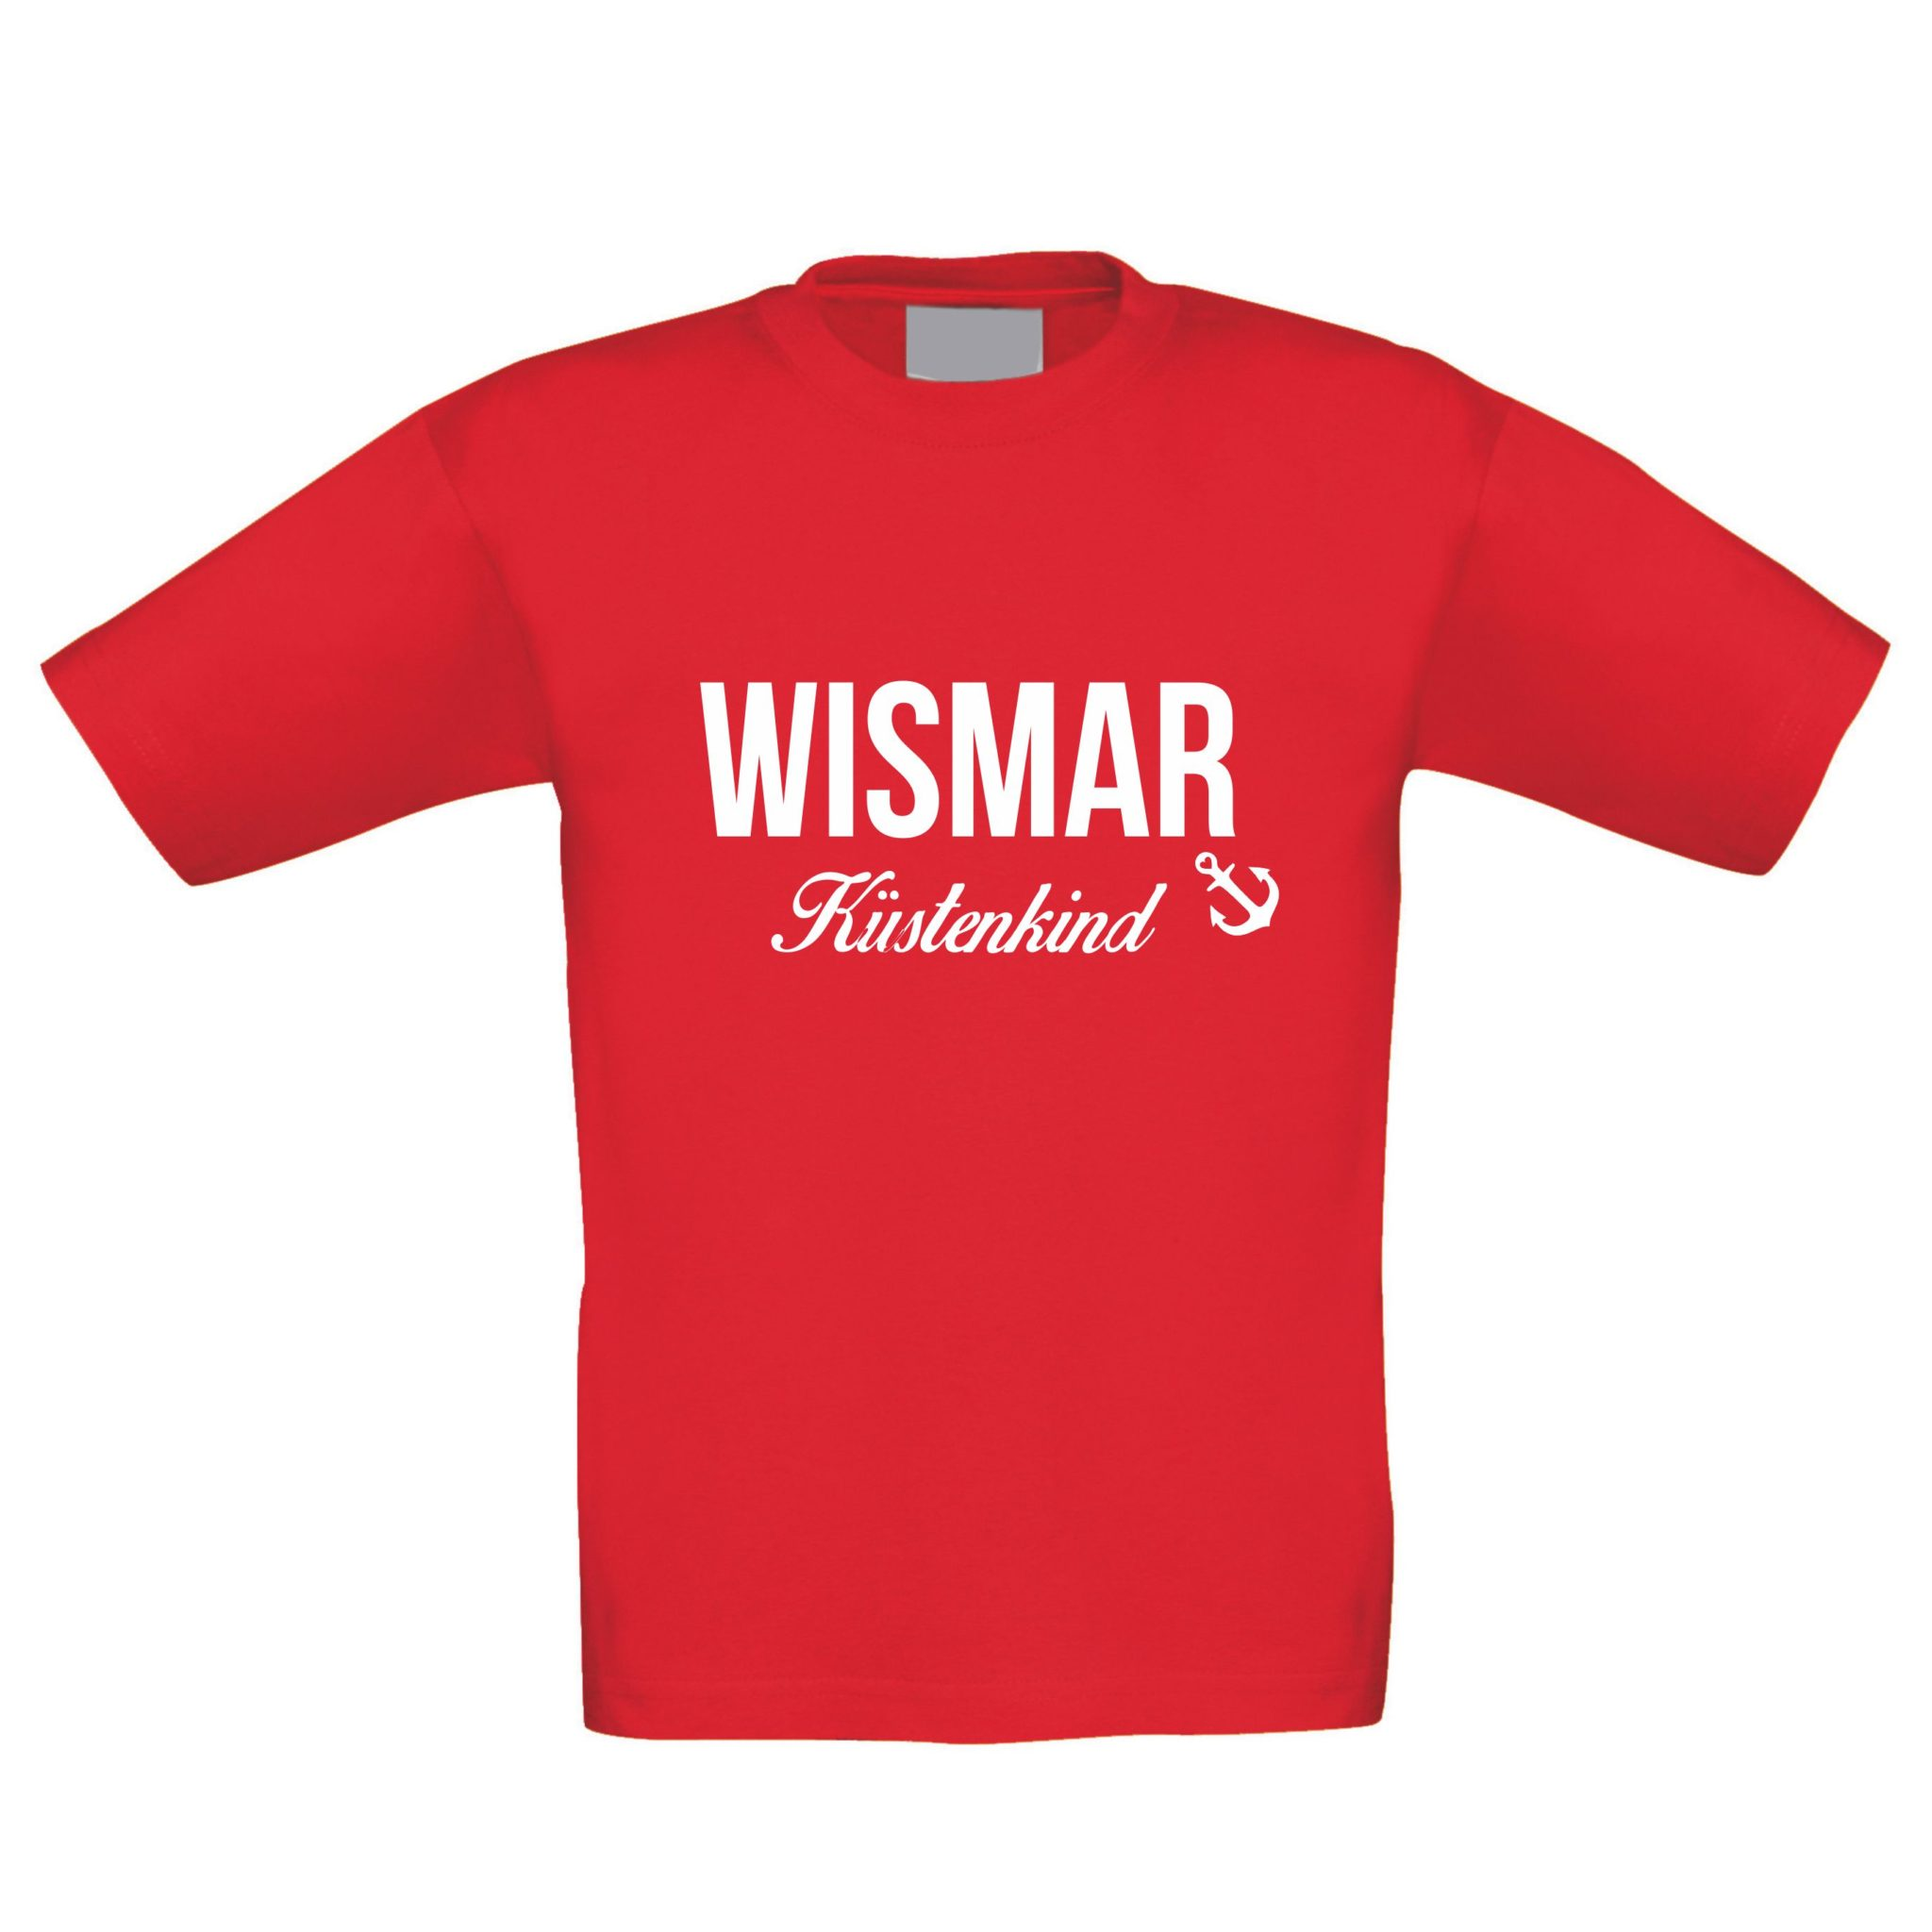 kinder t shirt wismar k stenkind ebay. Black Bedroom Furniture Sets. Home Design Ideas